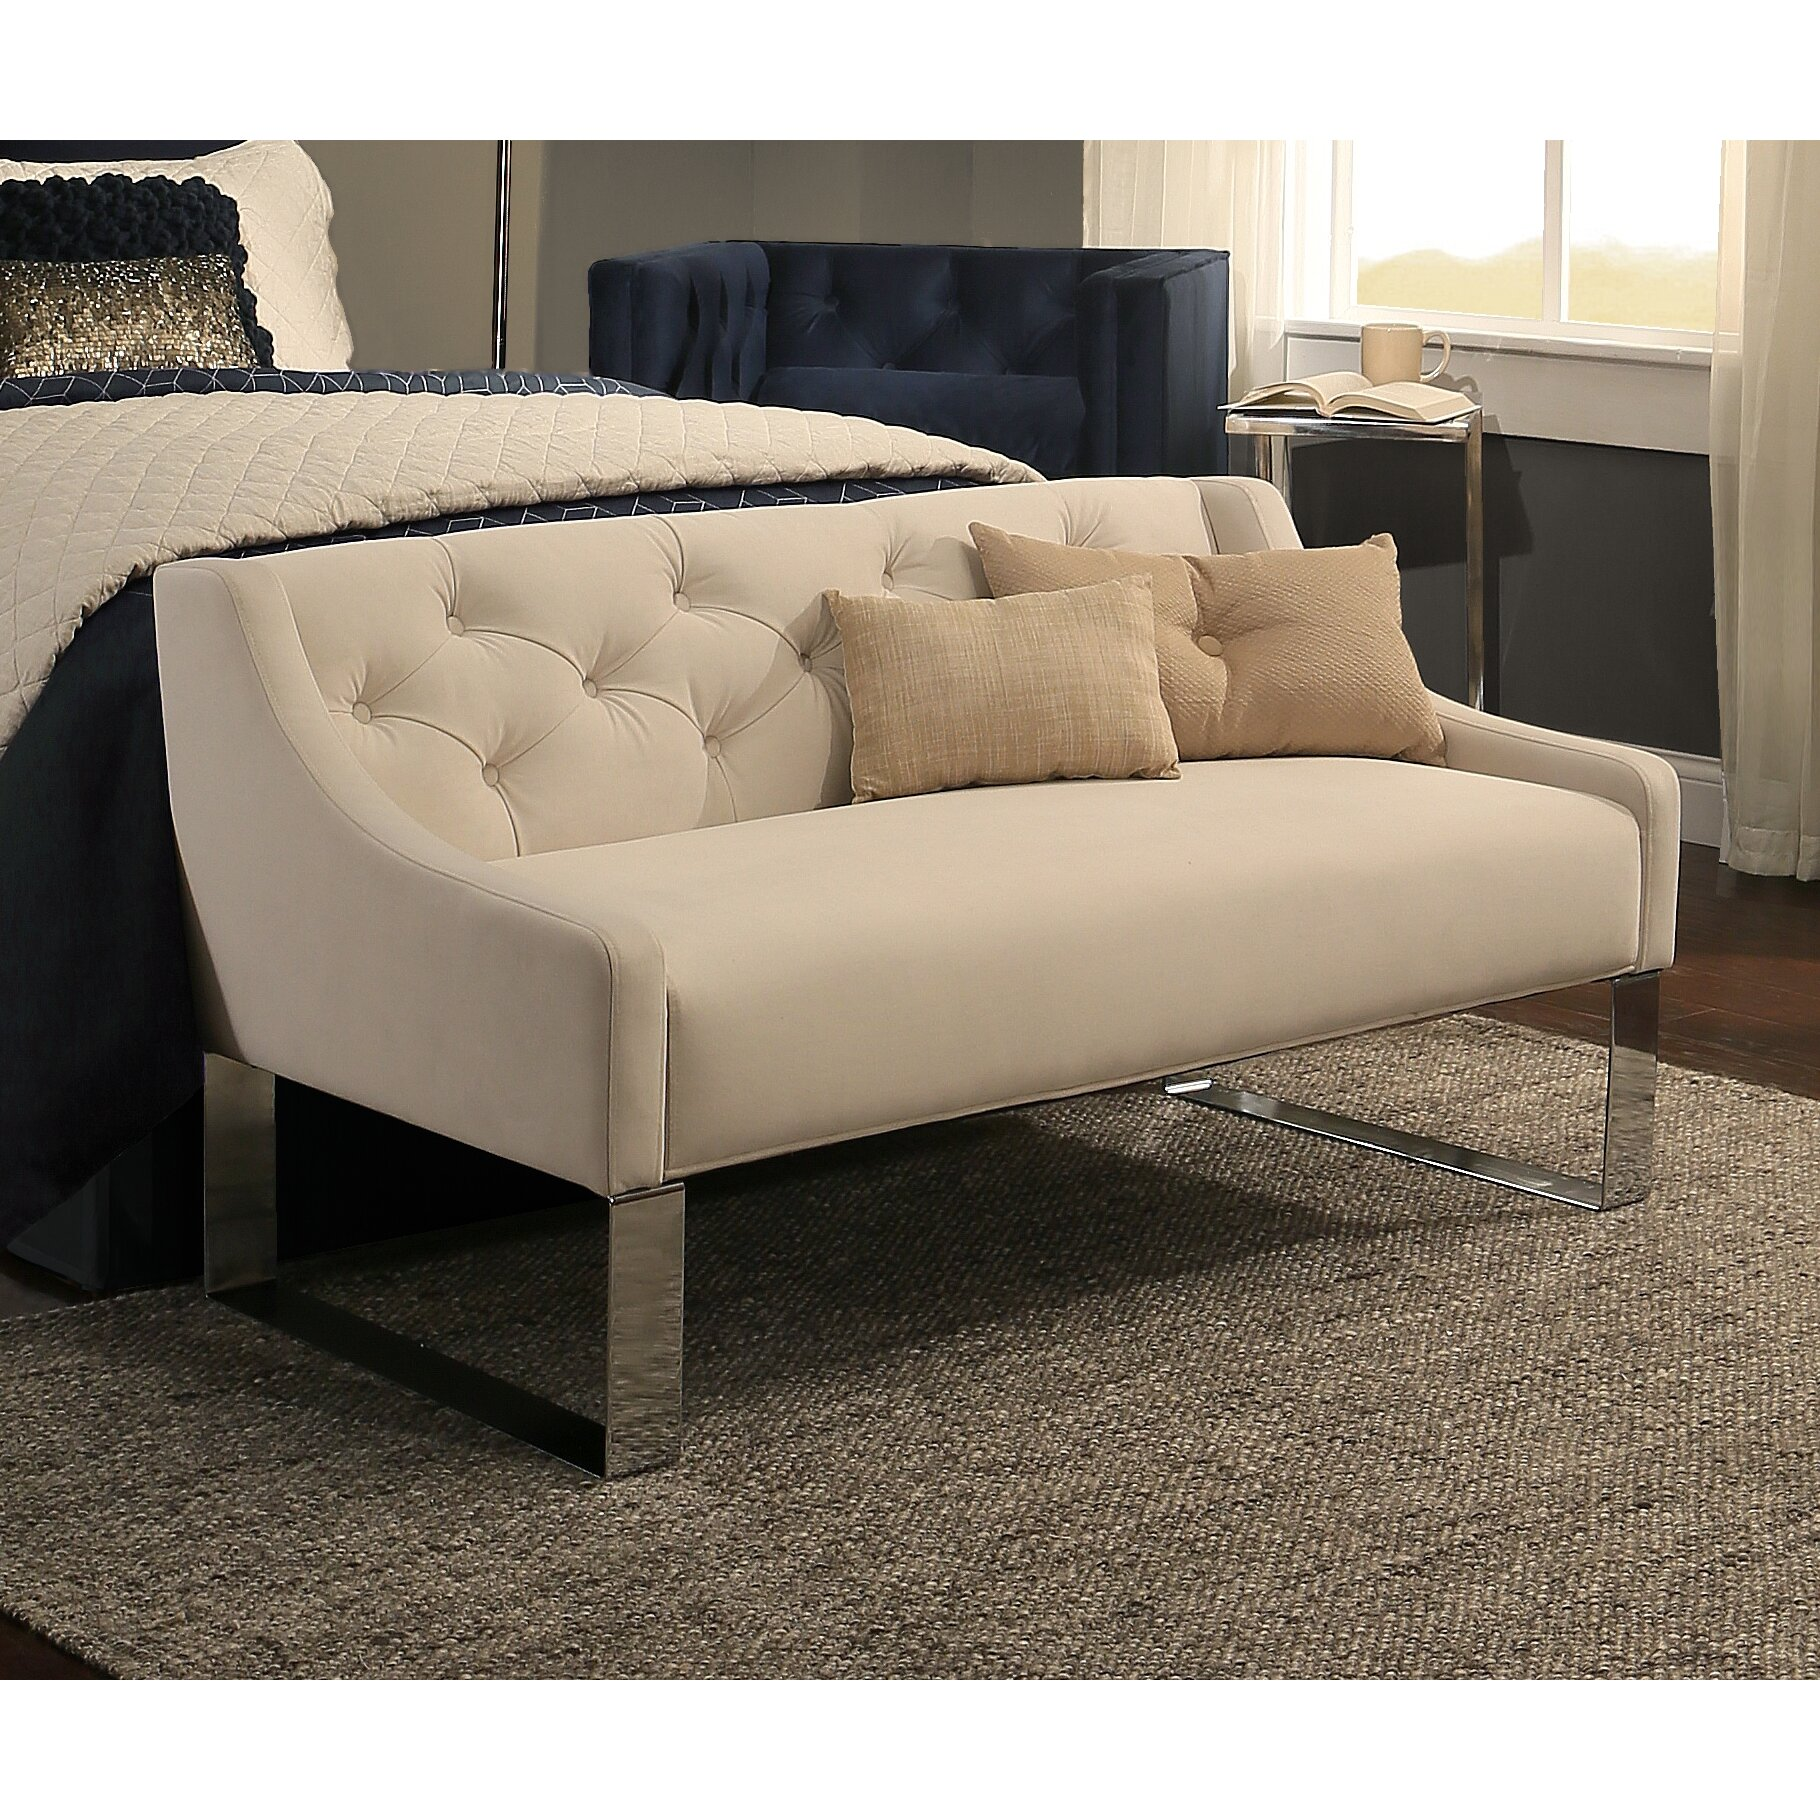 Republicdesignhouse Upholstered Bedroom Bench Reviews Wayfair